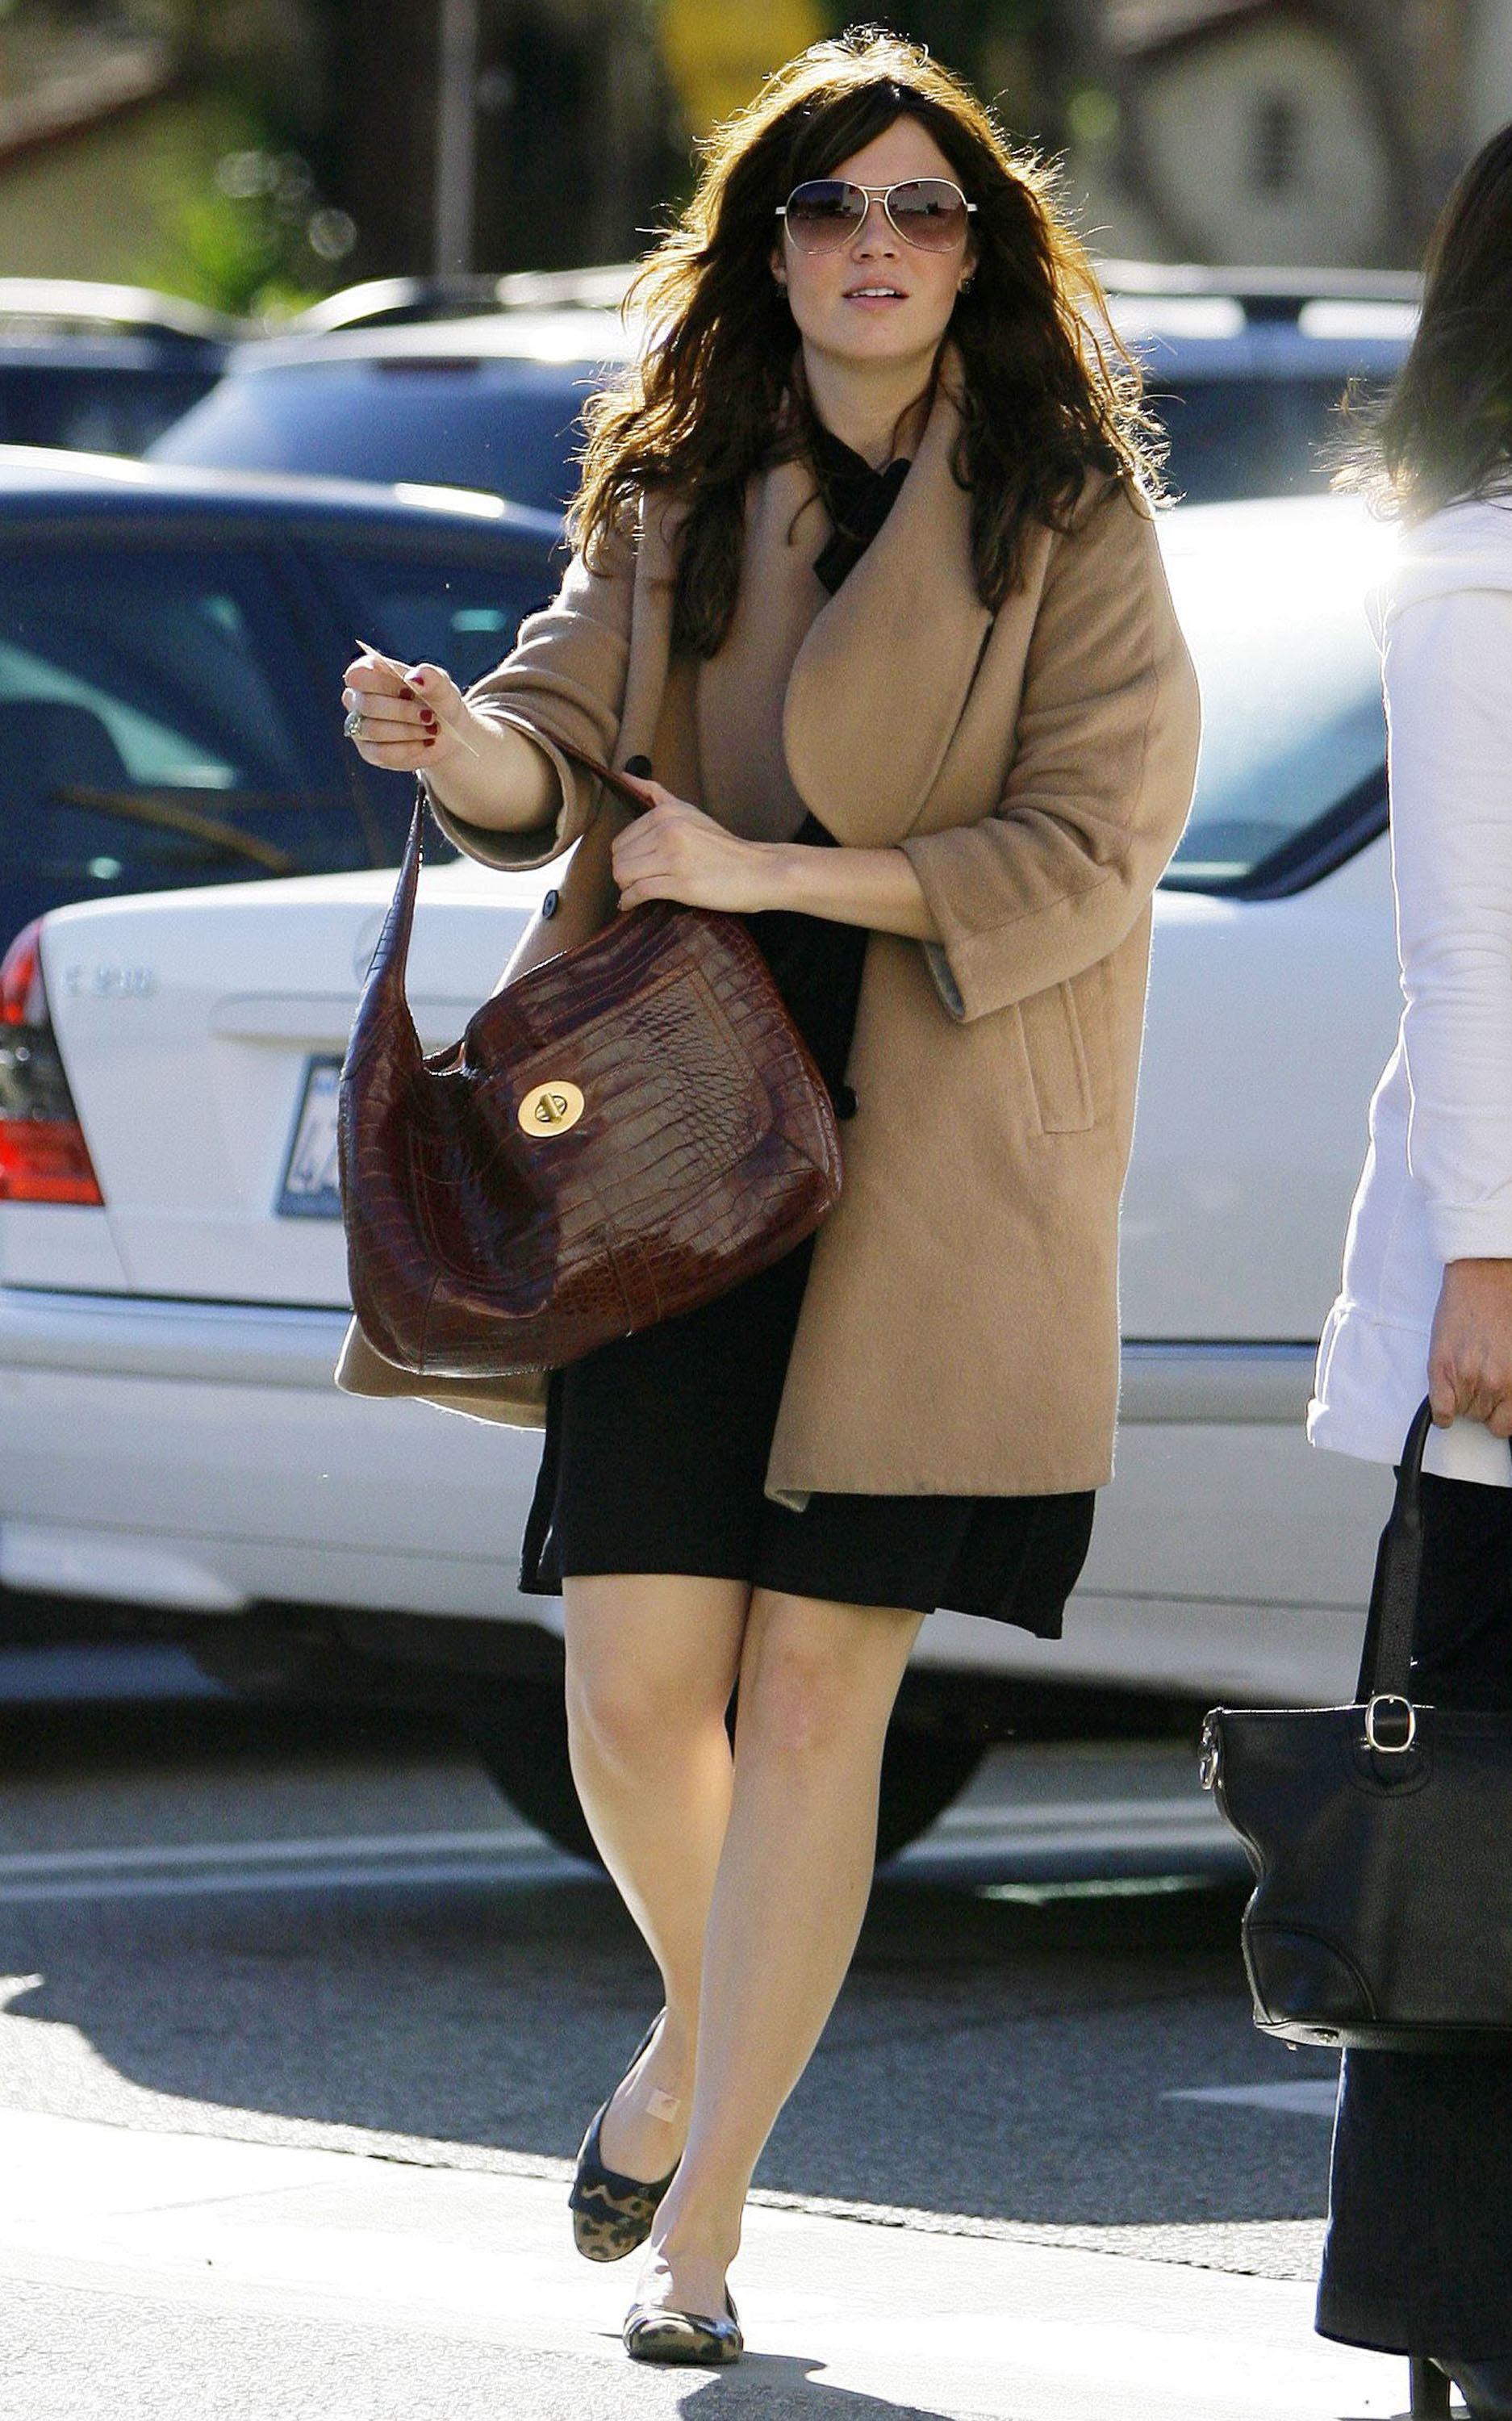 68060_celeb-city.eu_Mandy_Moore_out_and_about_in_West_Hollywood_10.12.2007_28_122_1026lo.jpg